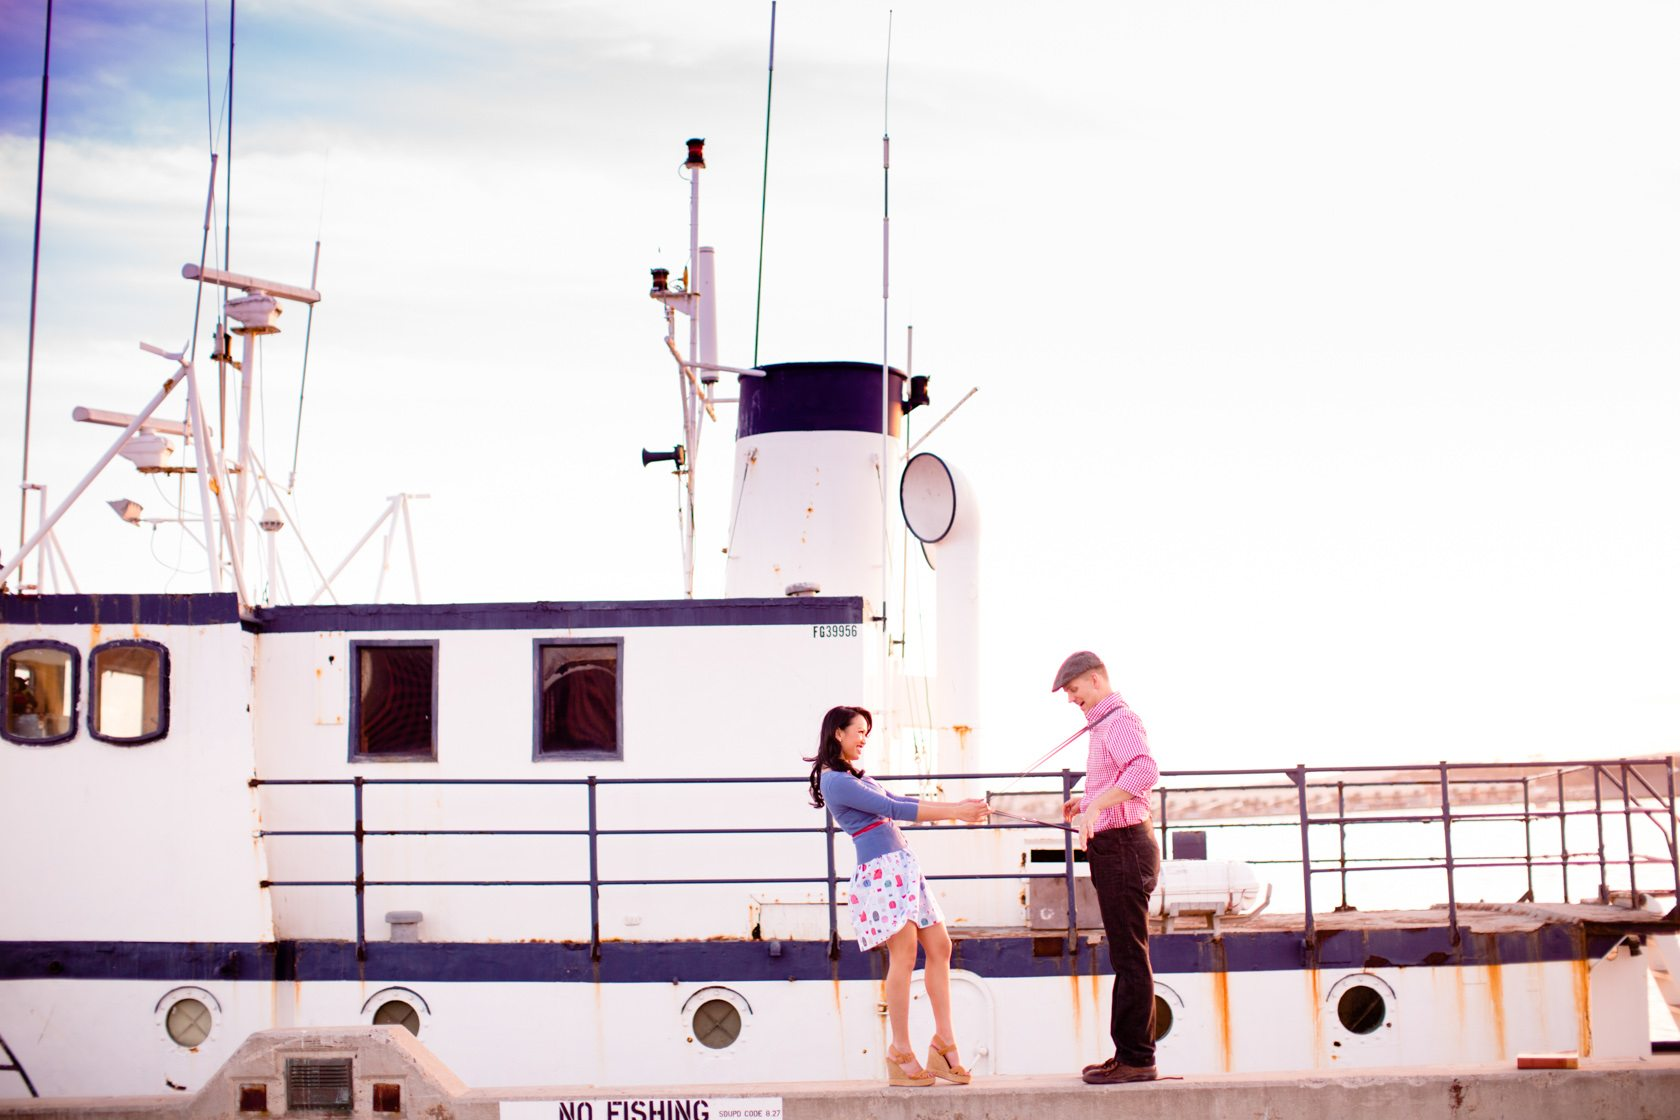 USS_Midway_Engagement_Session_32.jpg